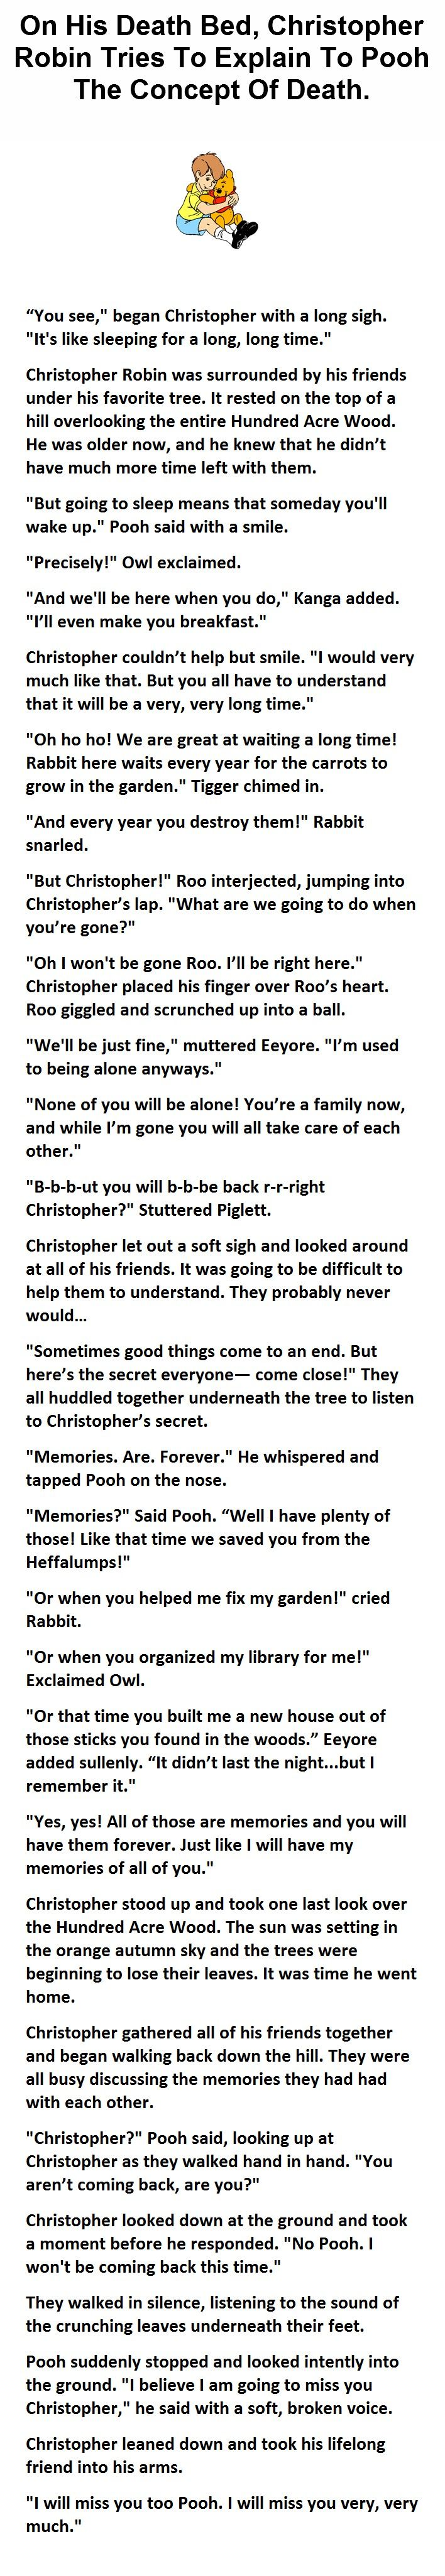 Christopher Robin says goodbye to Pooh. No heart will remain untouched.